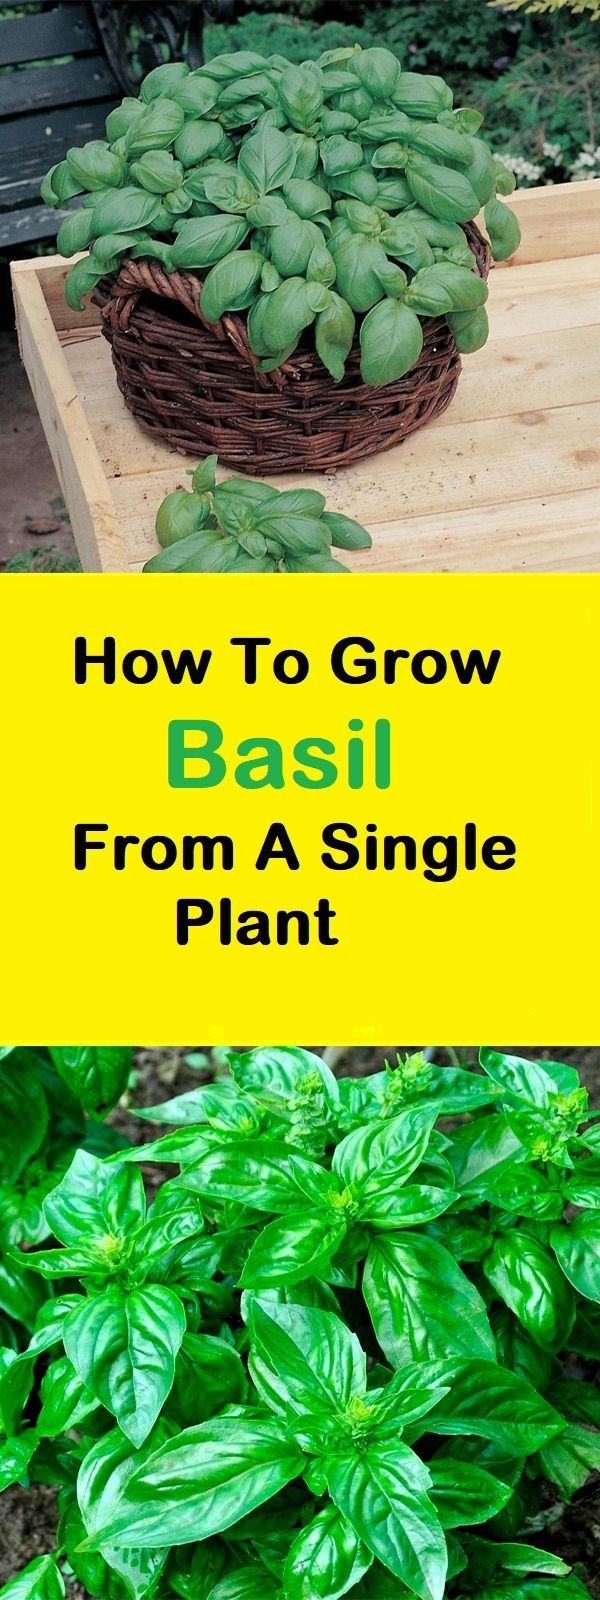 Scientists have discovered many healing properties of basil that are great against cancer. It is an anti-oxidant, so the free radicals in your body are limited and it also reduces the effects of the carcinogens that you are exposed to.